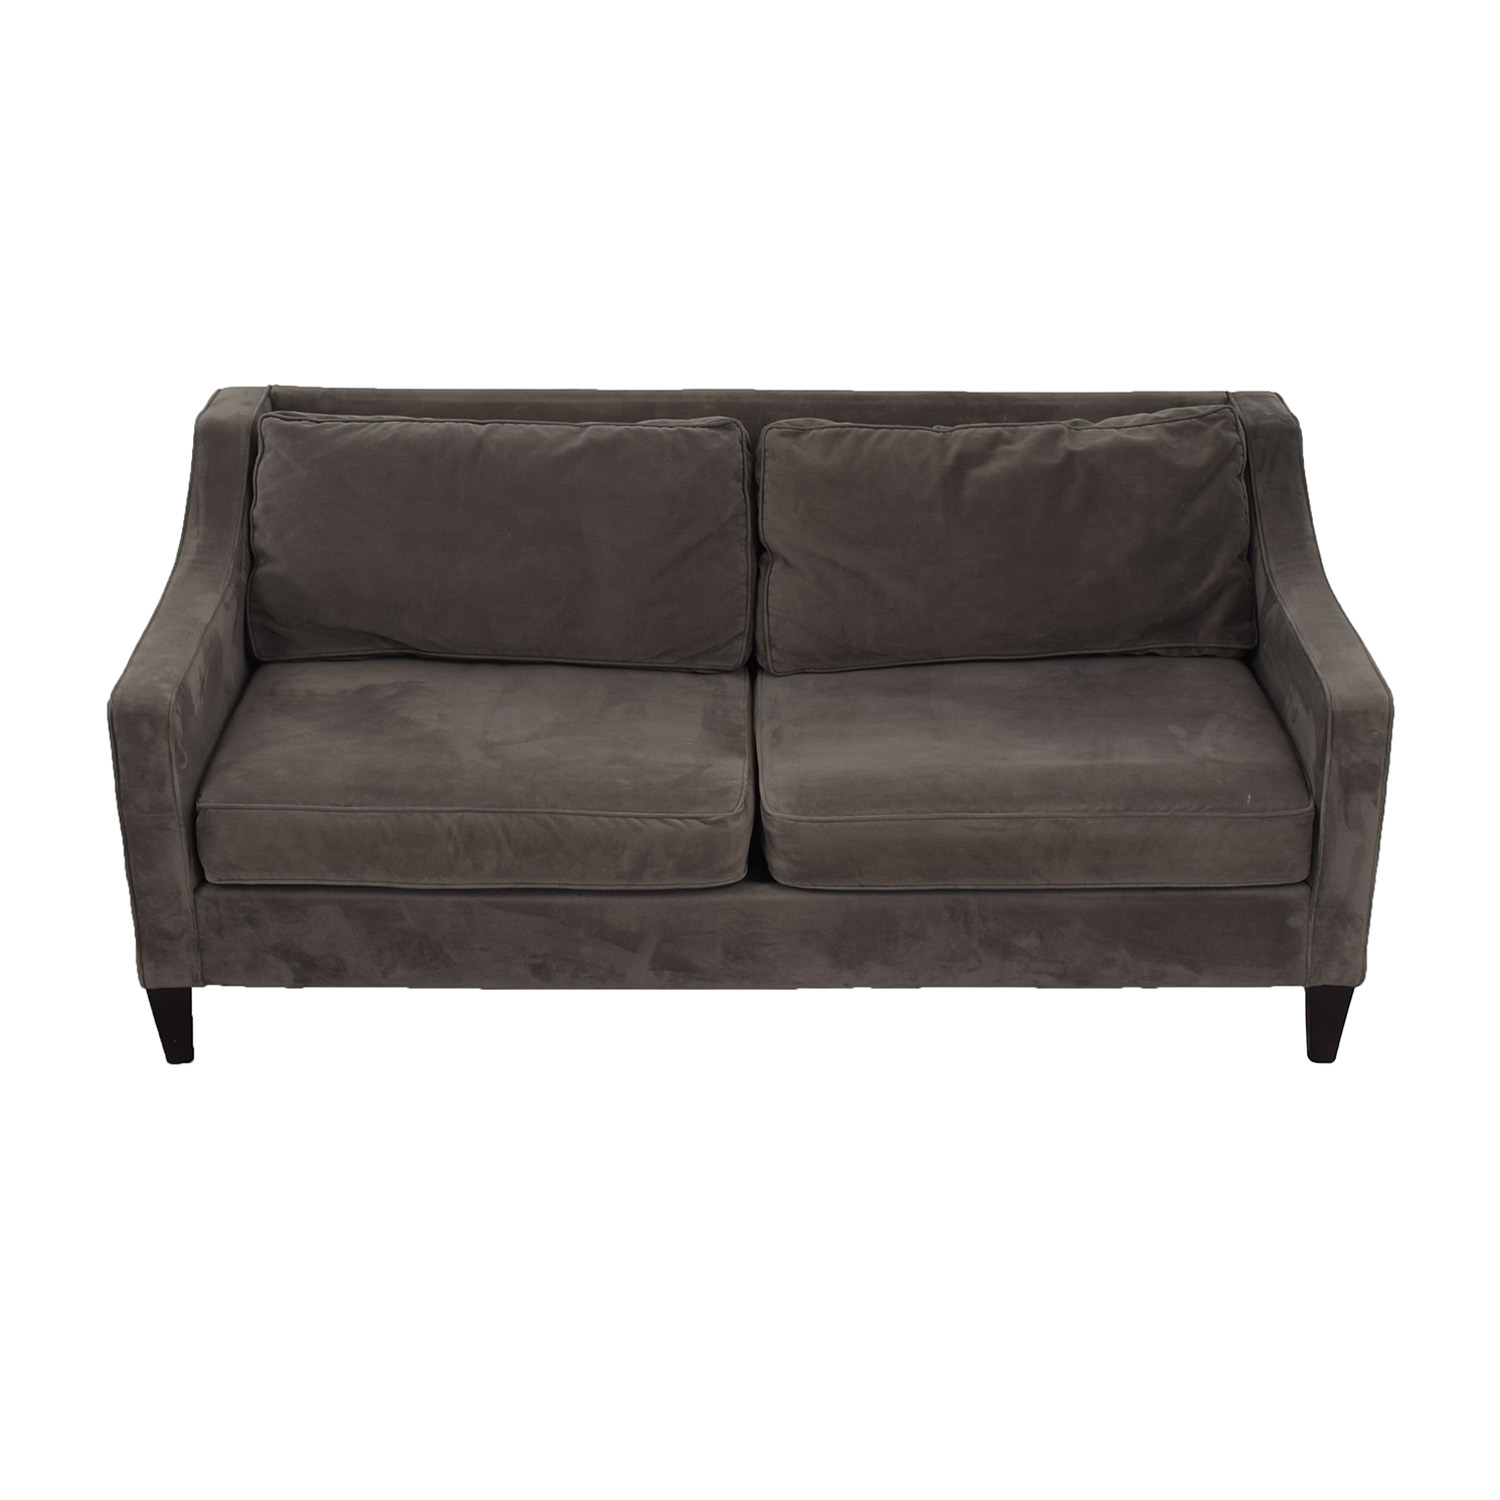 West Elm Paidge Grey Sofa West Elm